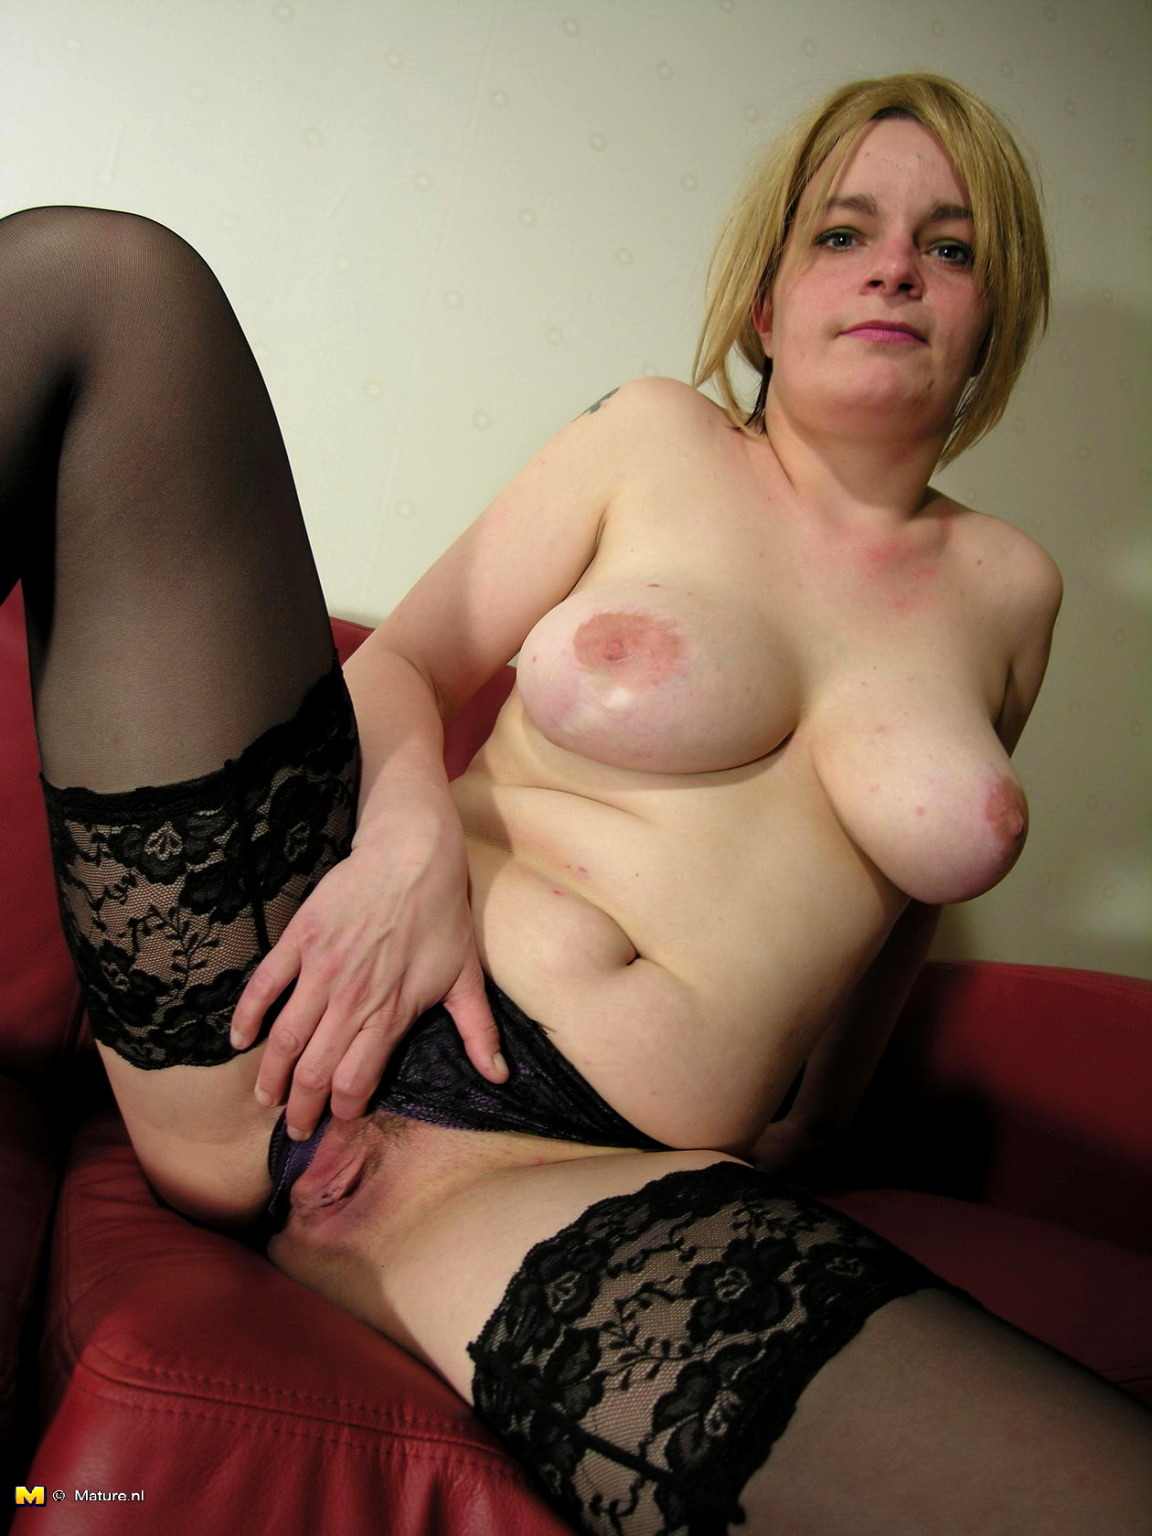 Mature sex nl